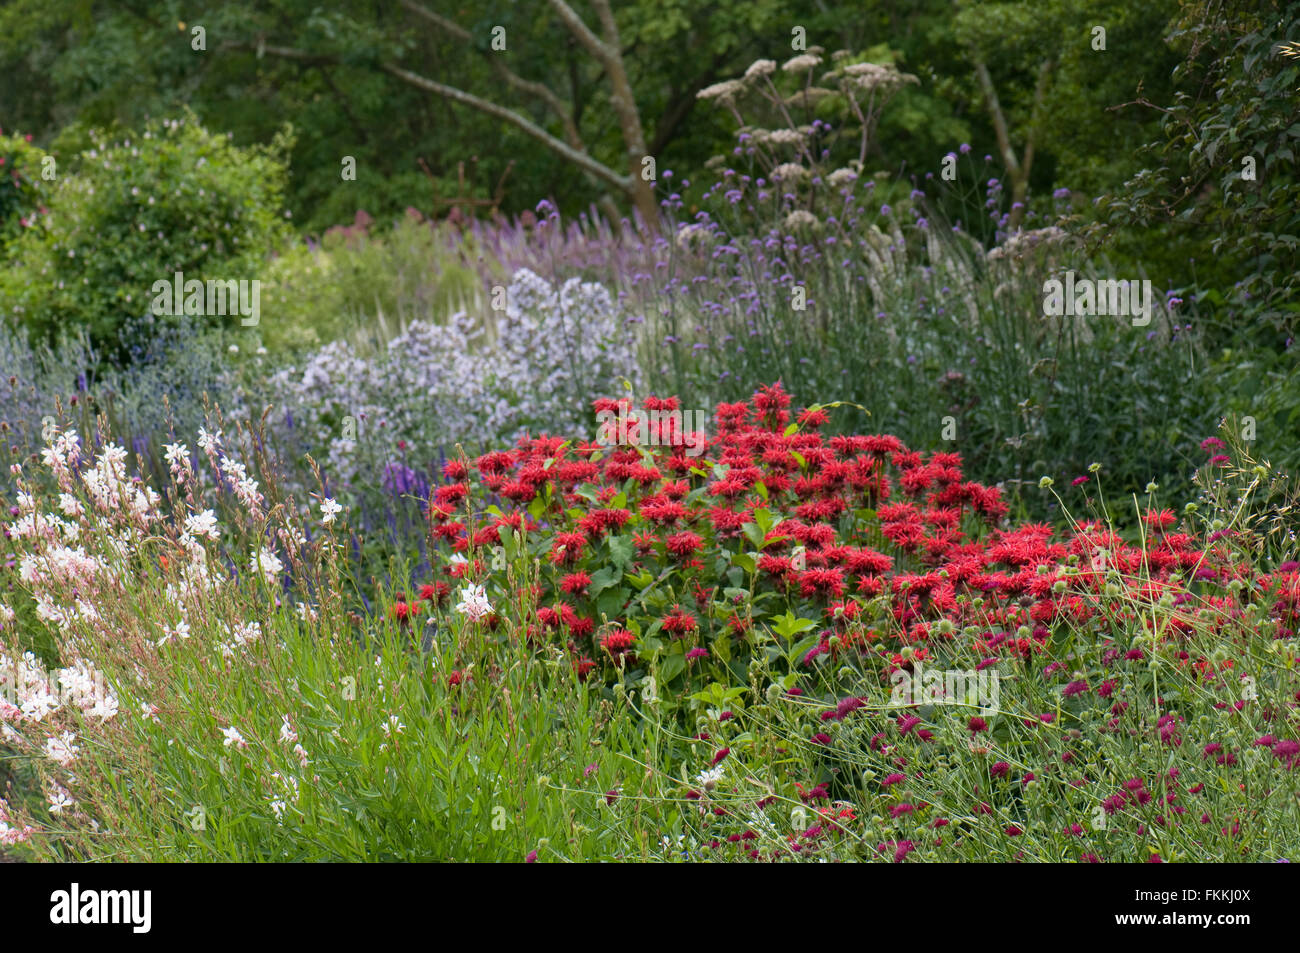 Mixed herbaceous border including Monarda 'Panorama Red Shades', Gaura lindheimeri 'Whirling Butterflies' - Stock Image